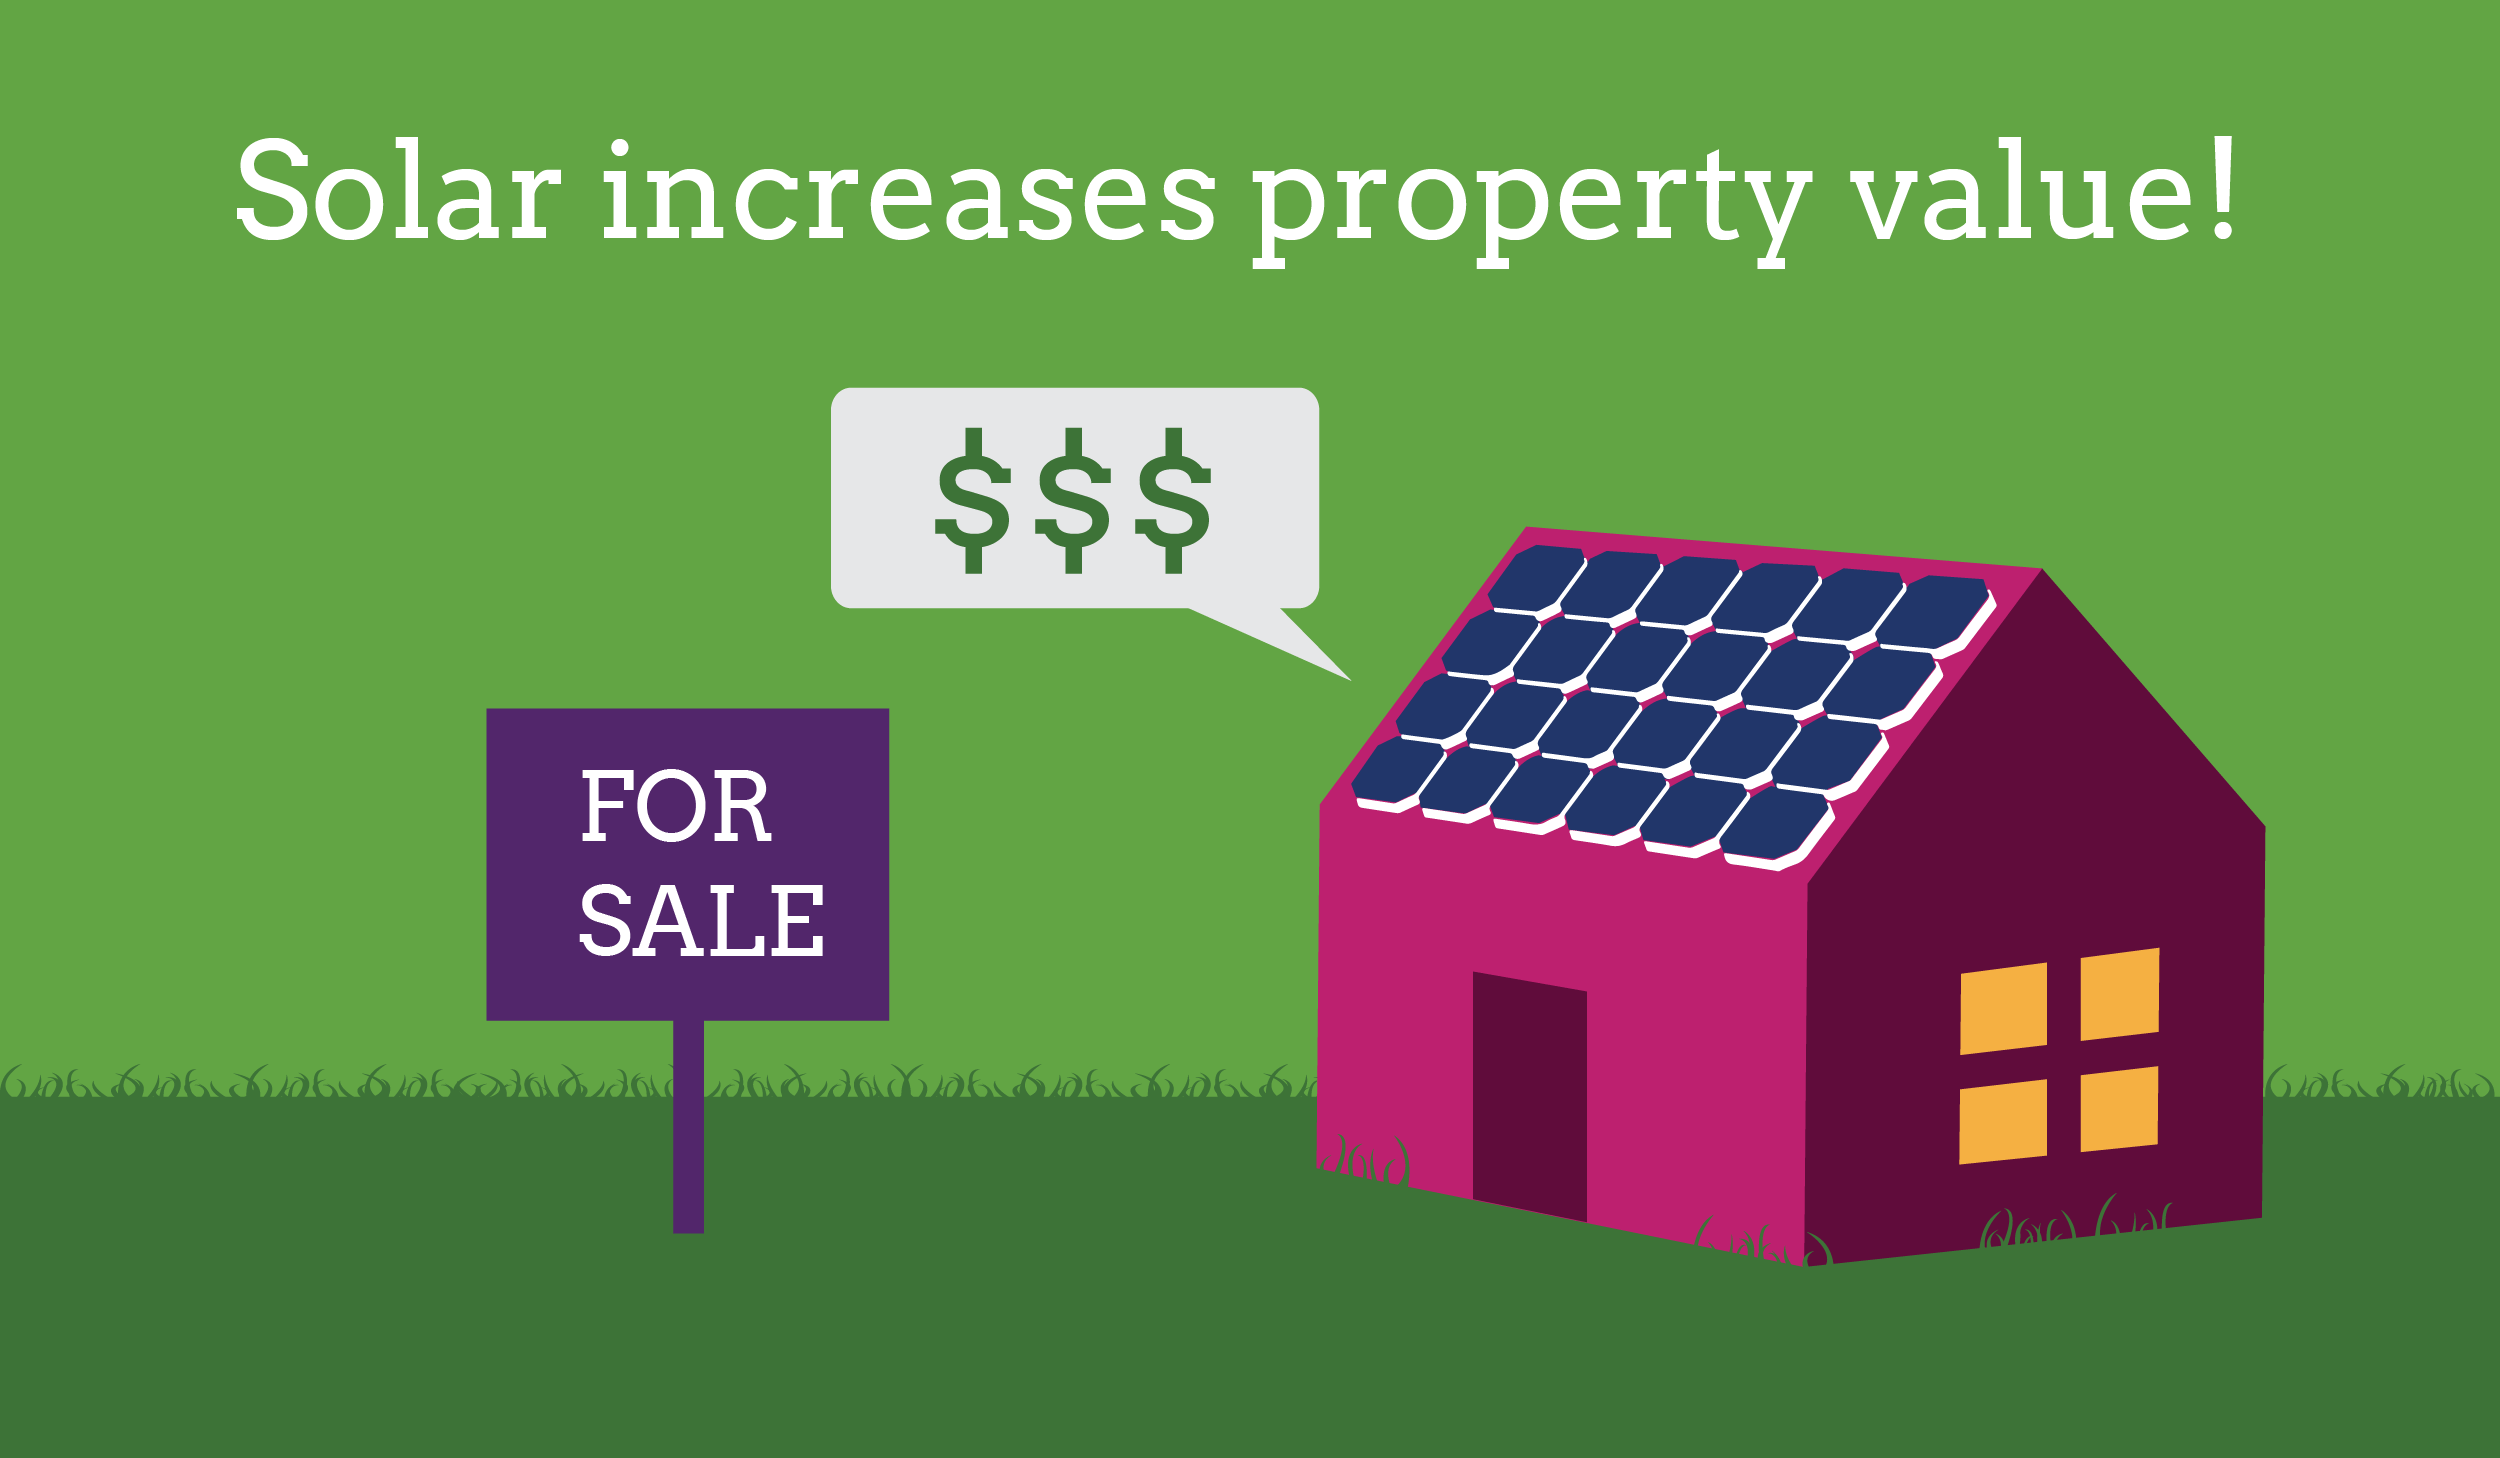 Fannie mae solar can improve your home value energysage for How to increase home value